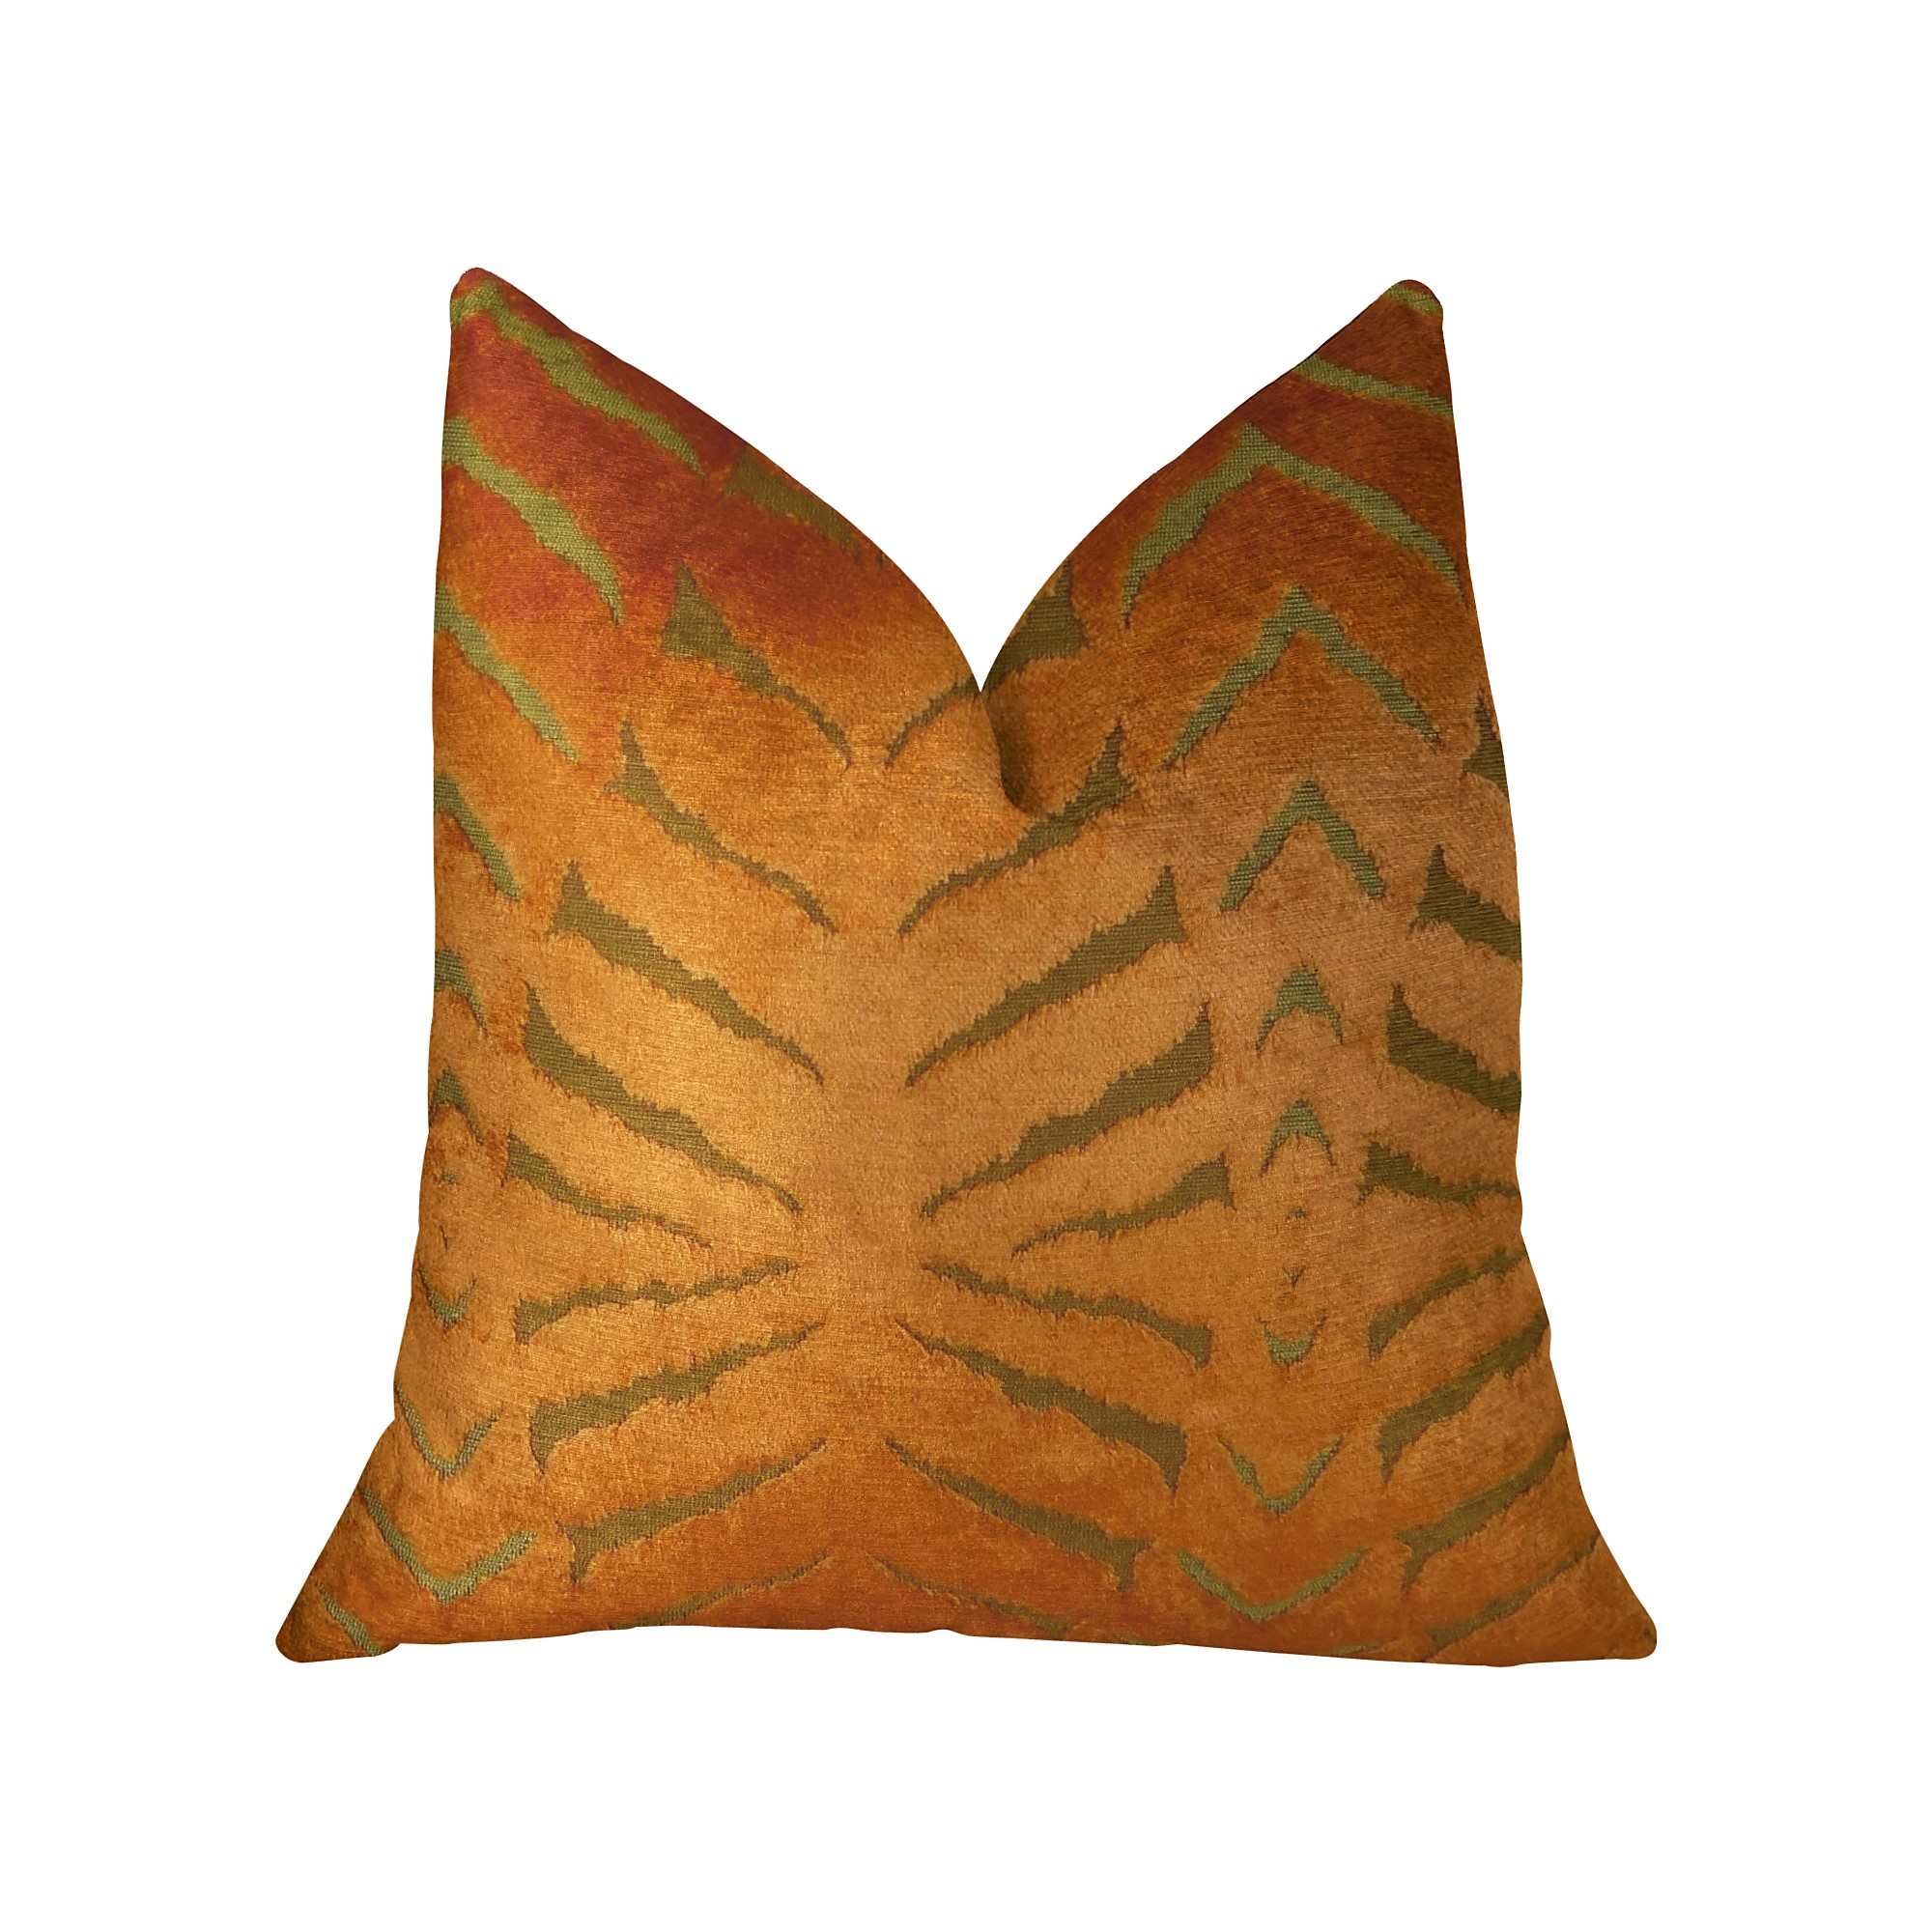 Plutus Magnetism Handmade Throw Pillow, Double Sided